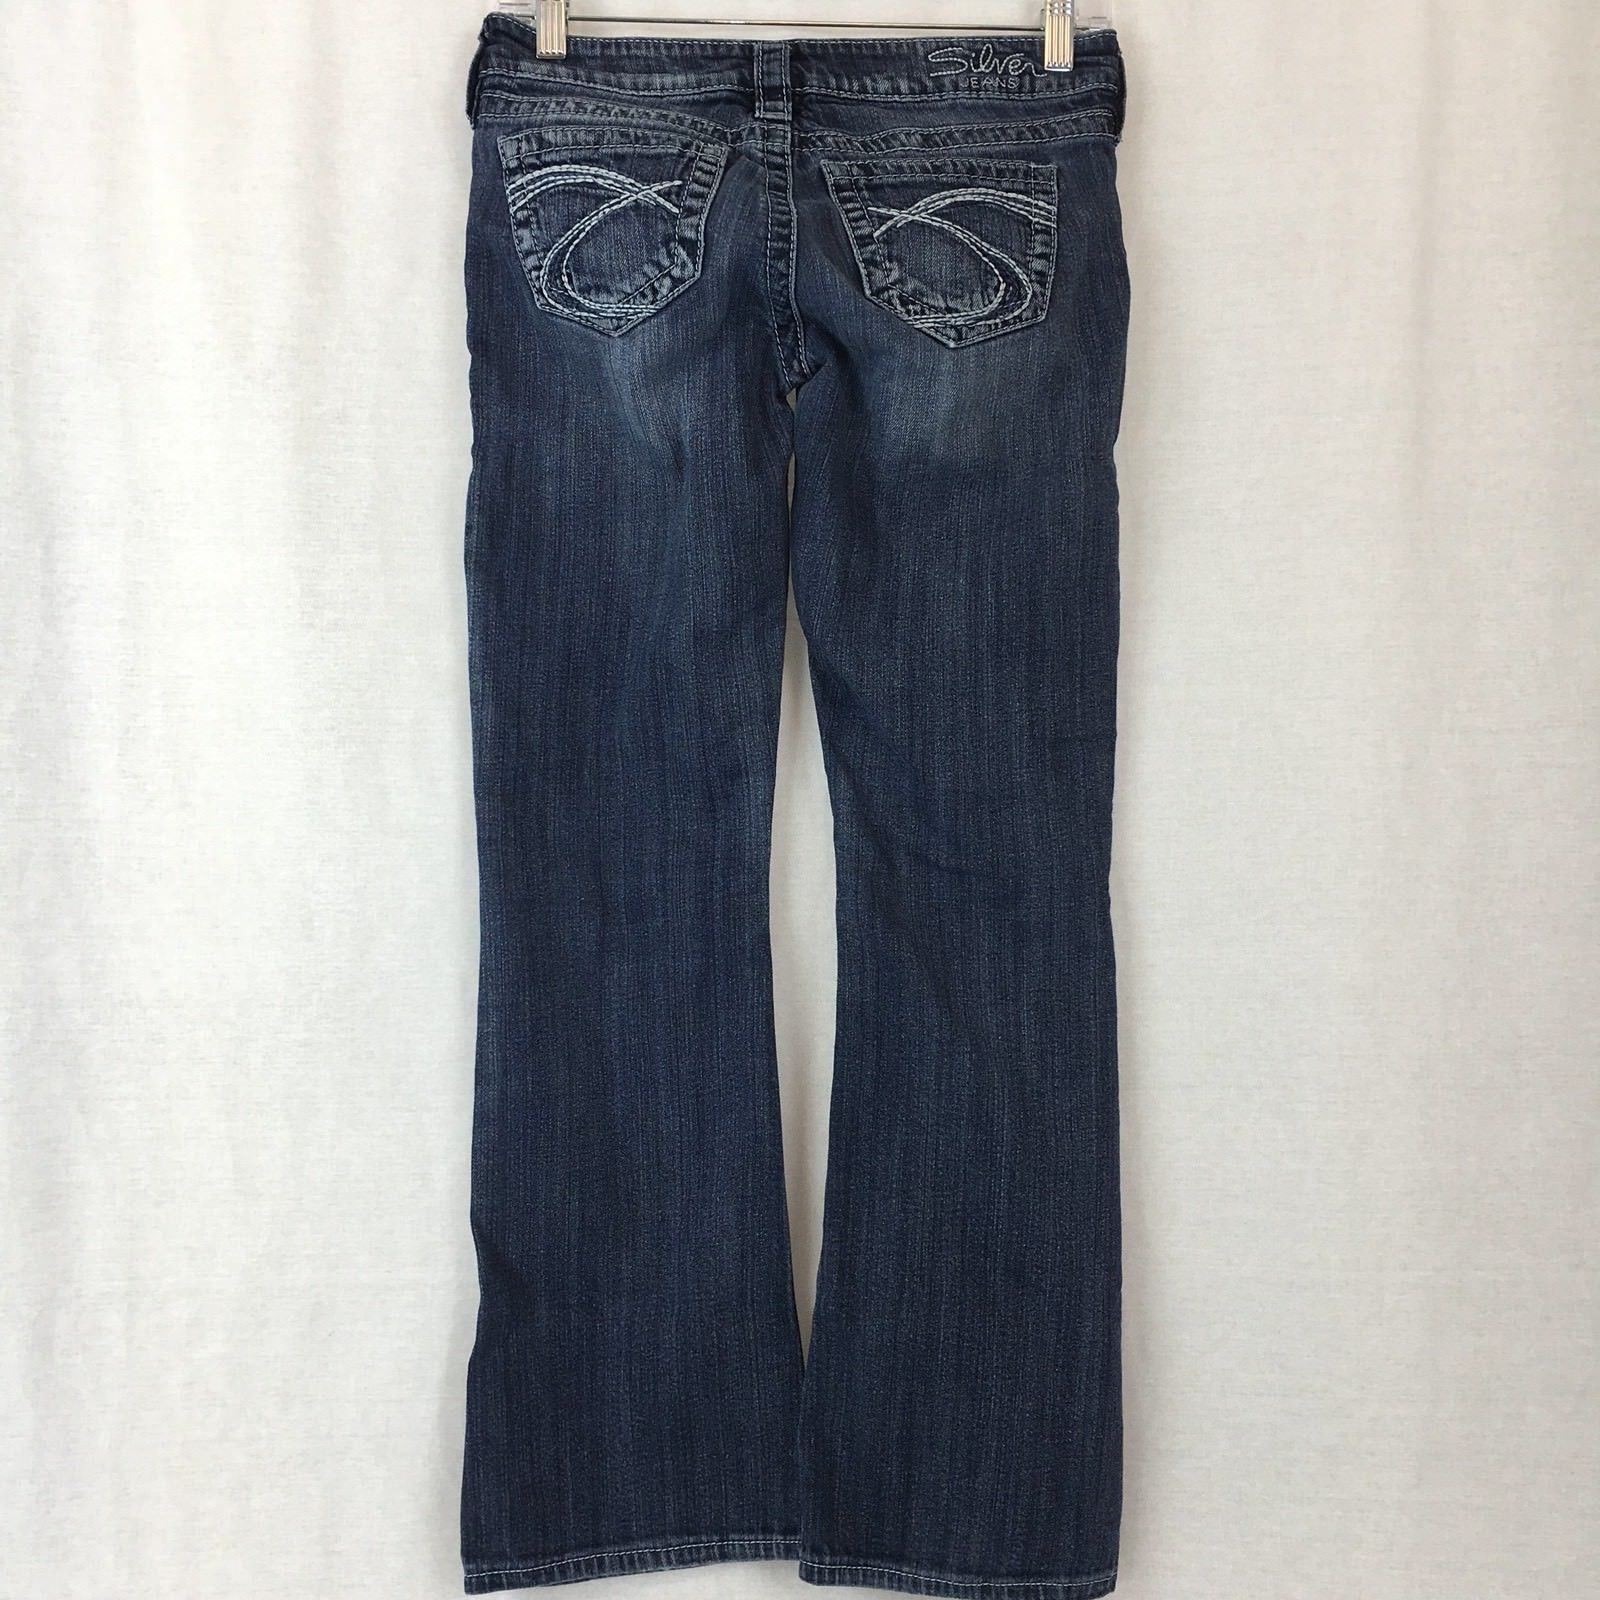 Silver Jeans Tuesday Bootcut Stretch Distressed Thick Stitch Medium Wash Size 25